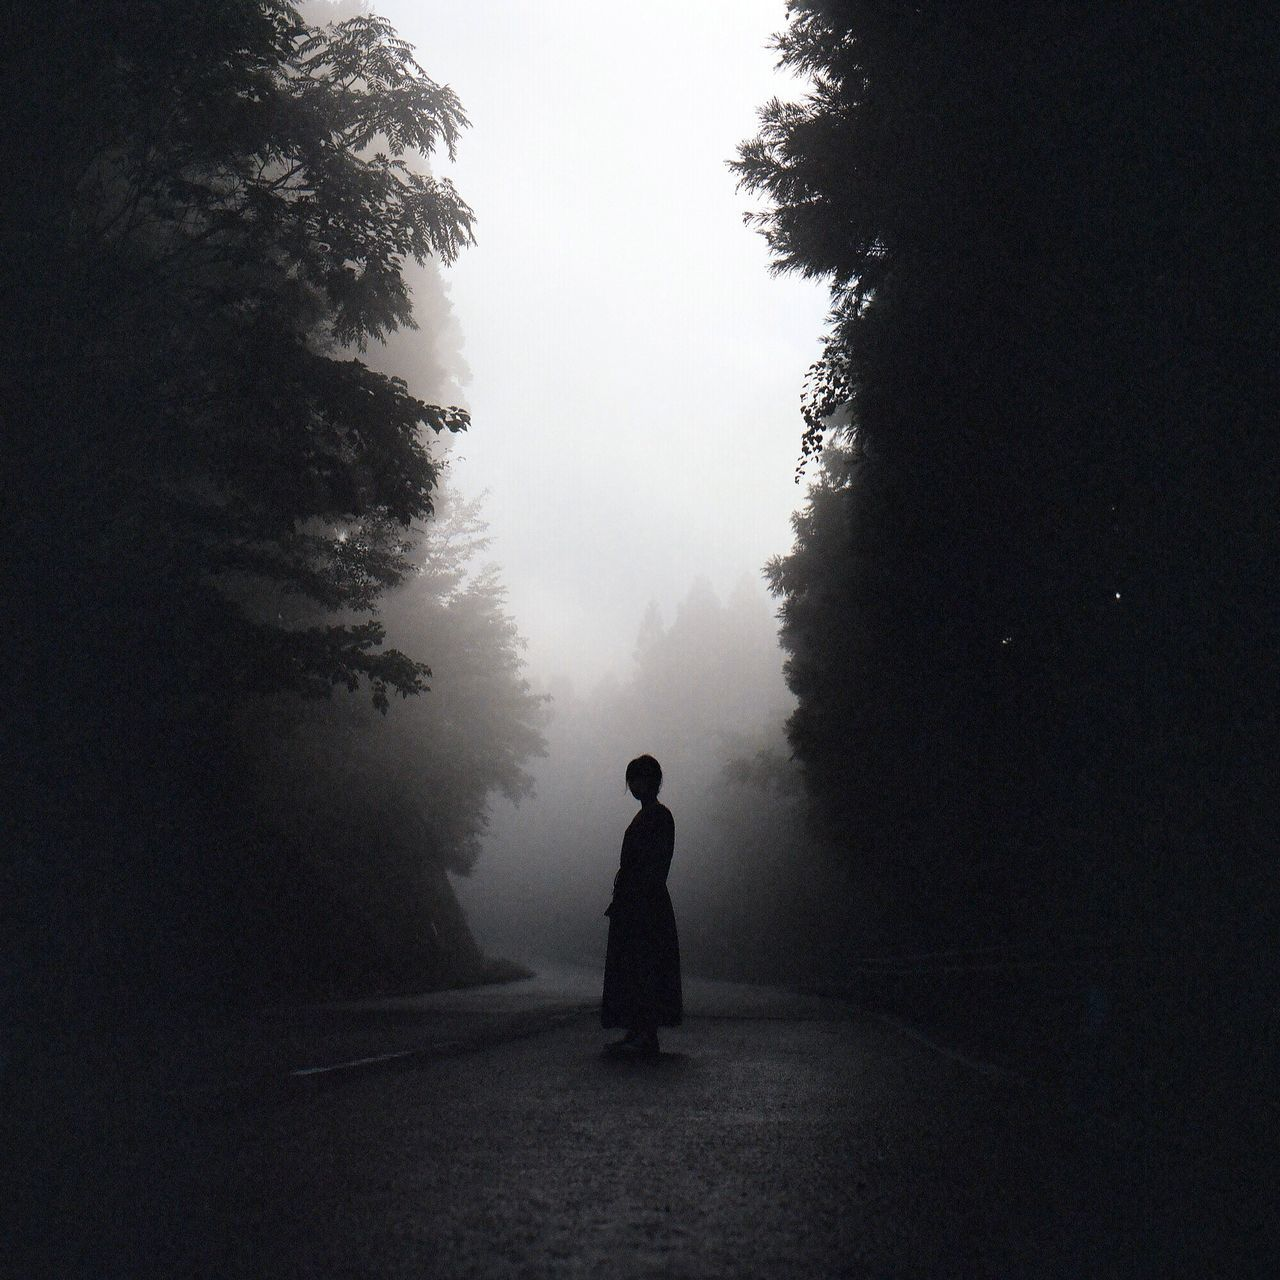 tree, rear view, fog, silhouette, full length, one person, nature, walking, the way forward, mist, real people, landscape, day, road, outdoors, beauty in nature, hazy, scenics, sky, people